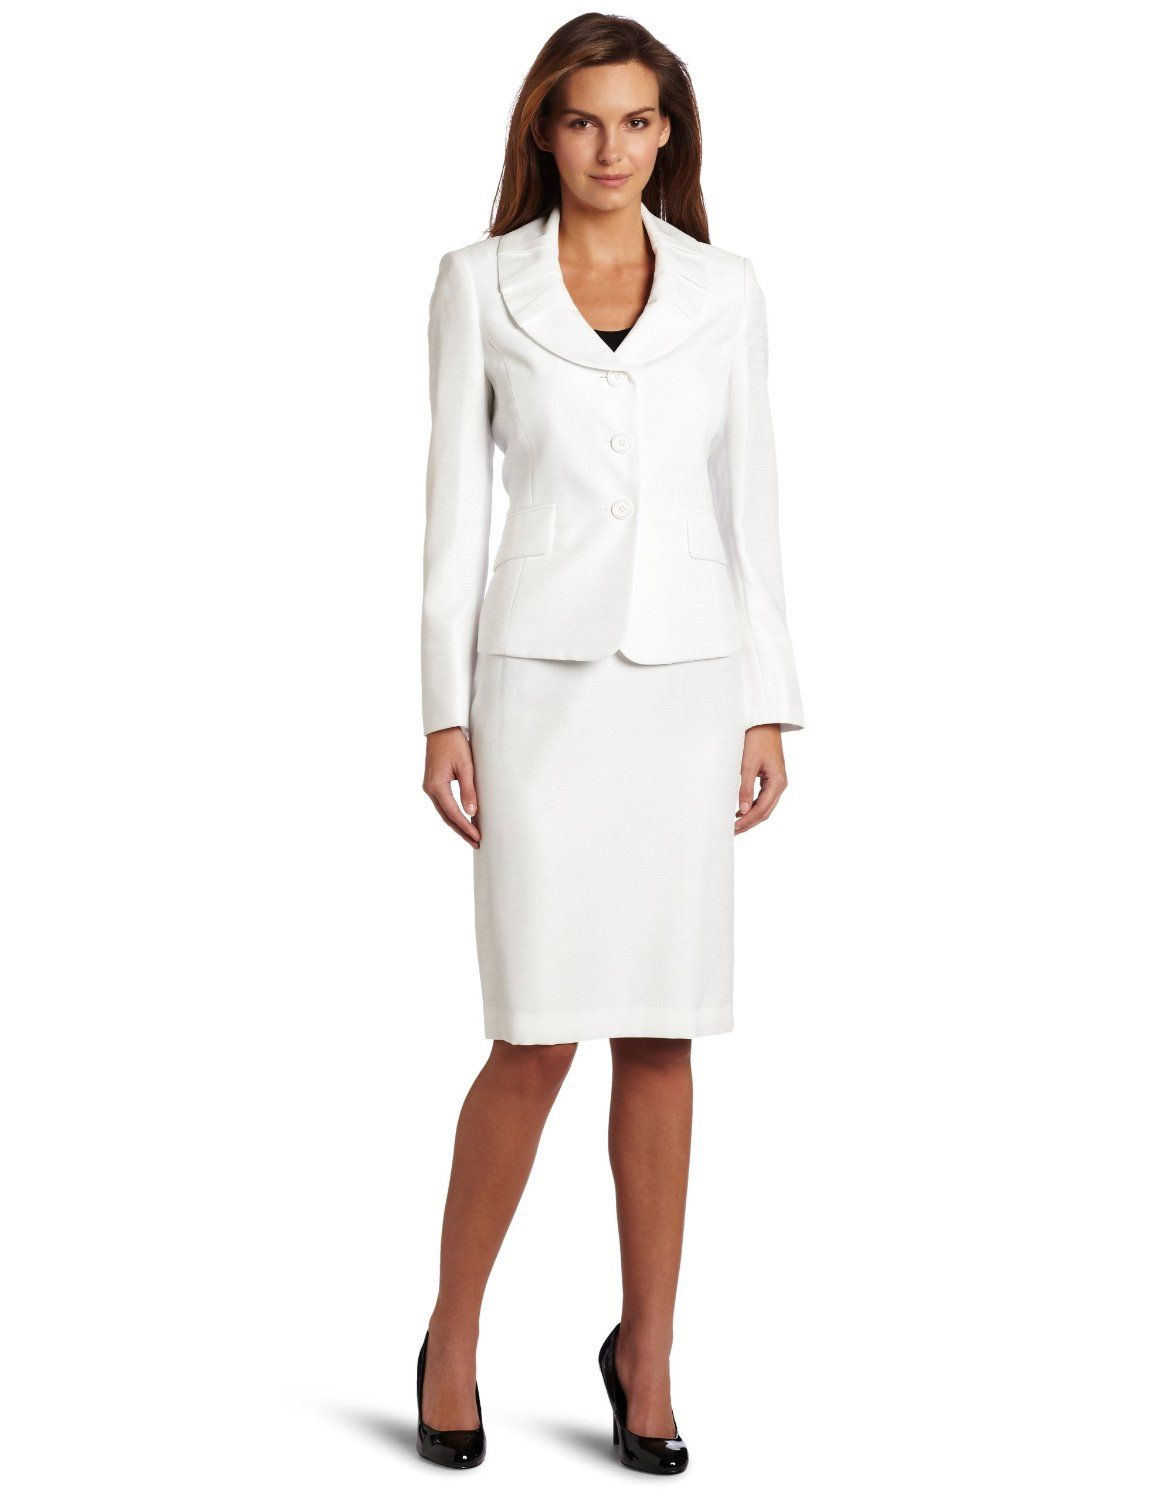 1000  images about White suit on Pinterest | Lady, Diana and